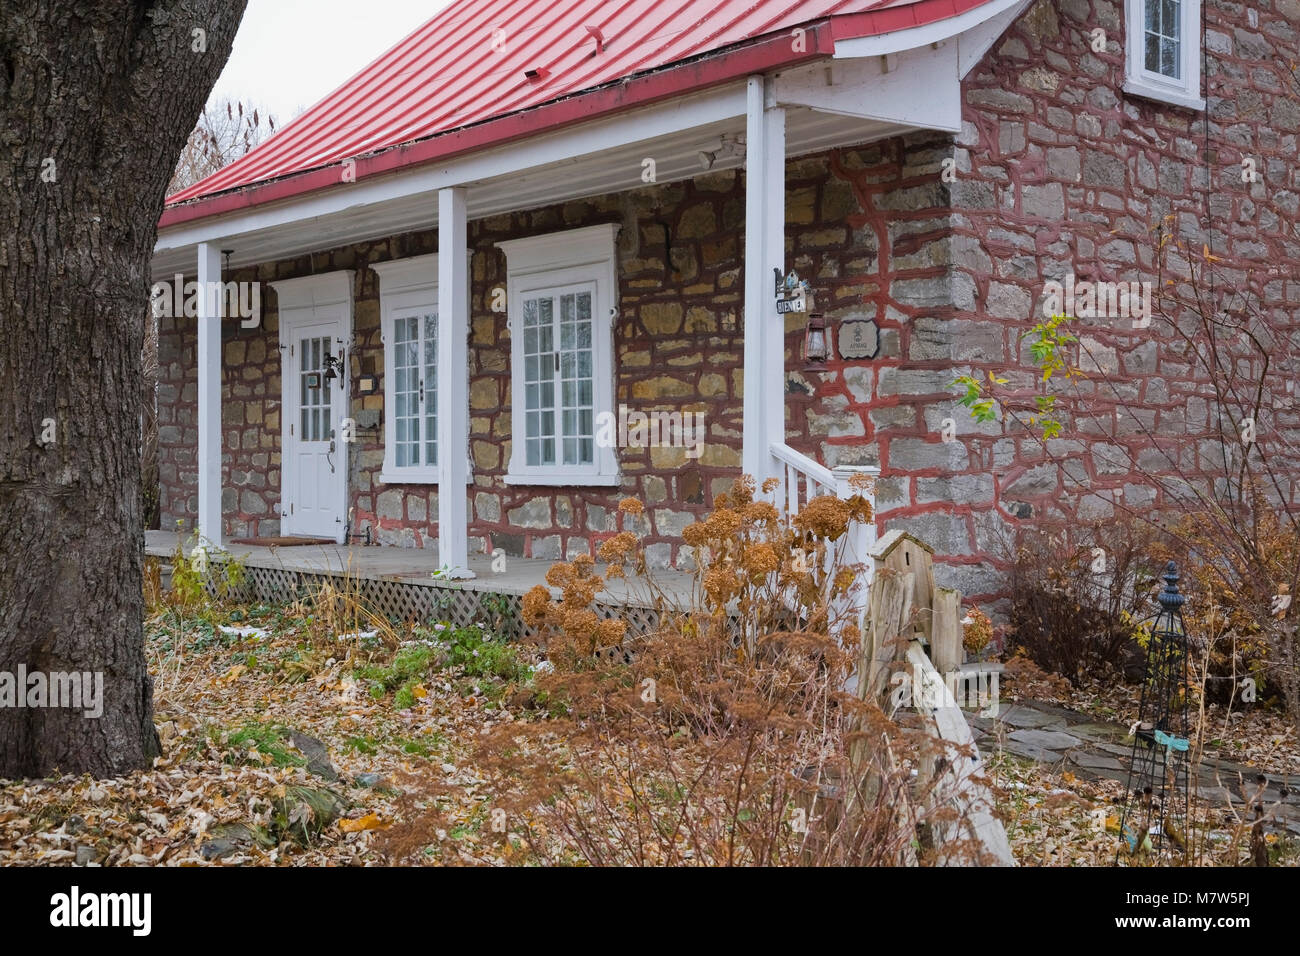 Superior Old Canadiana Circa 1831 Cottage Style Residential Home With Quarry Stone  Exterior In Autumn.